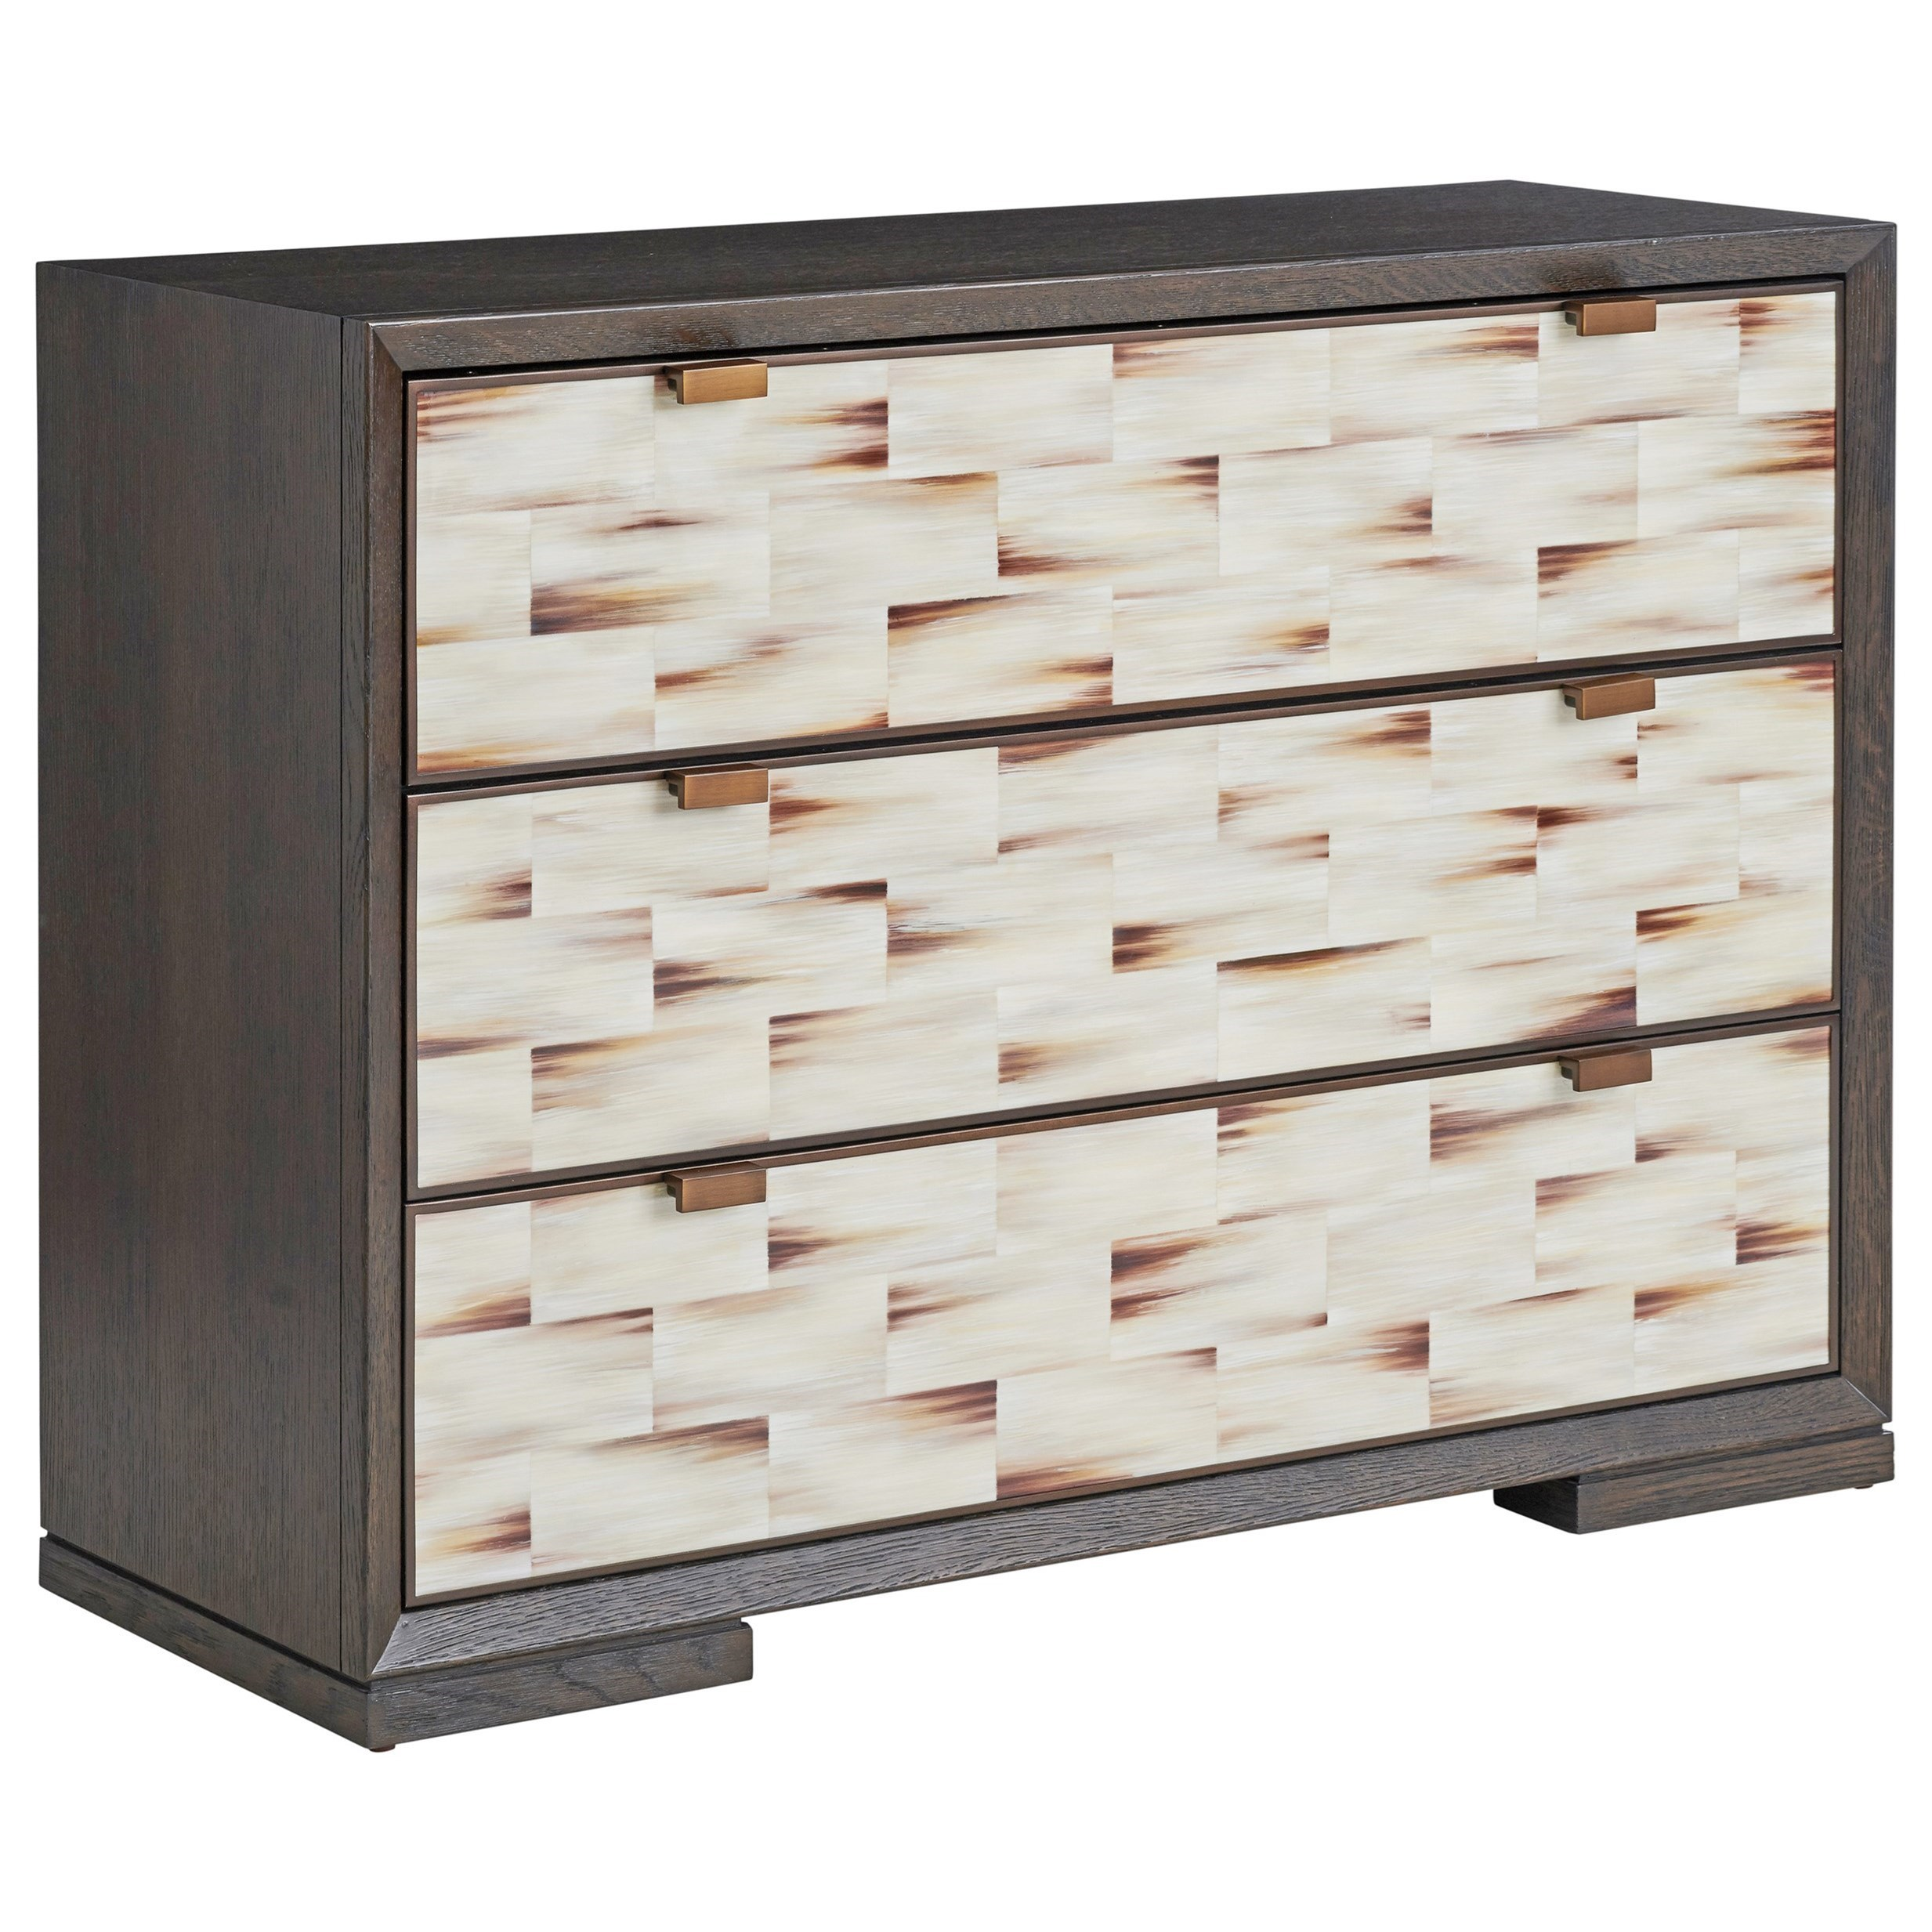 Park City Juniper Hall Chest by Barclay Butera at Baer's Furniture